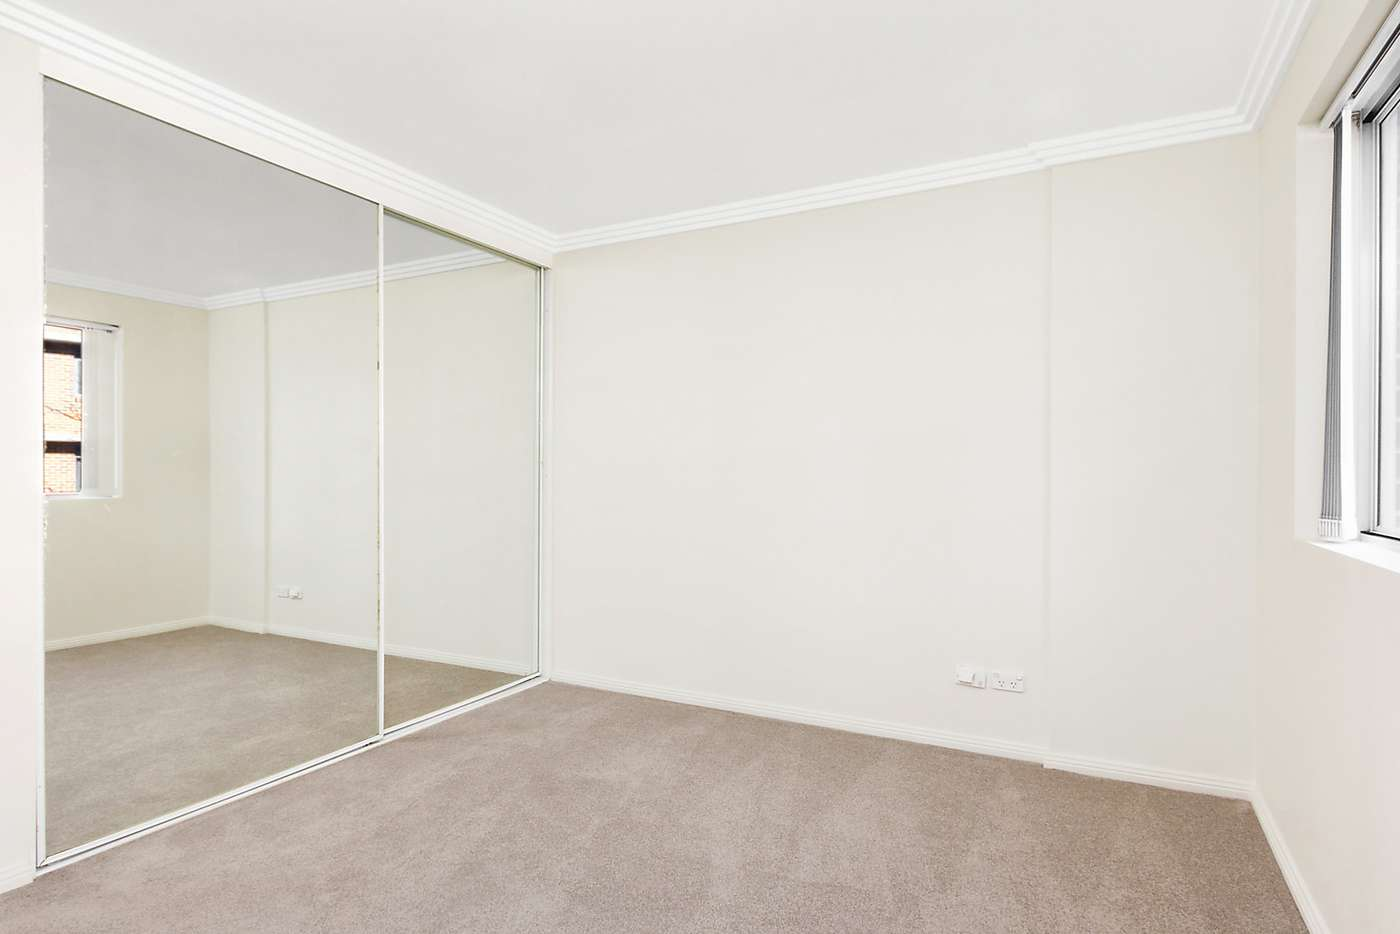 Fifth view of Homely apartment listing, 20/20 College Crescent, Hornsby NSW 2077